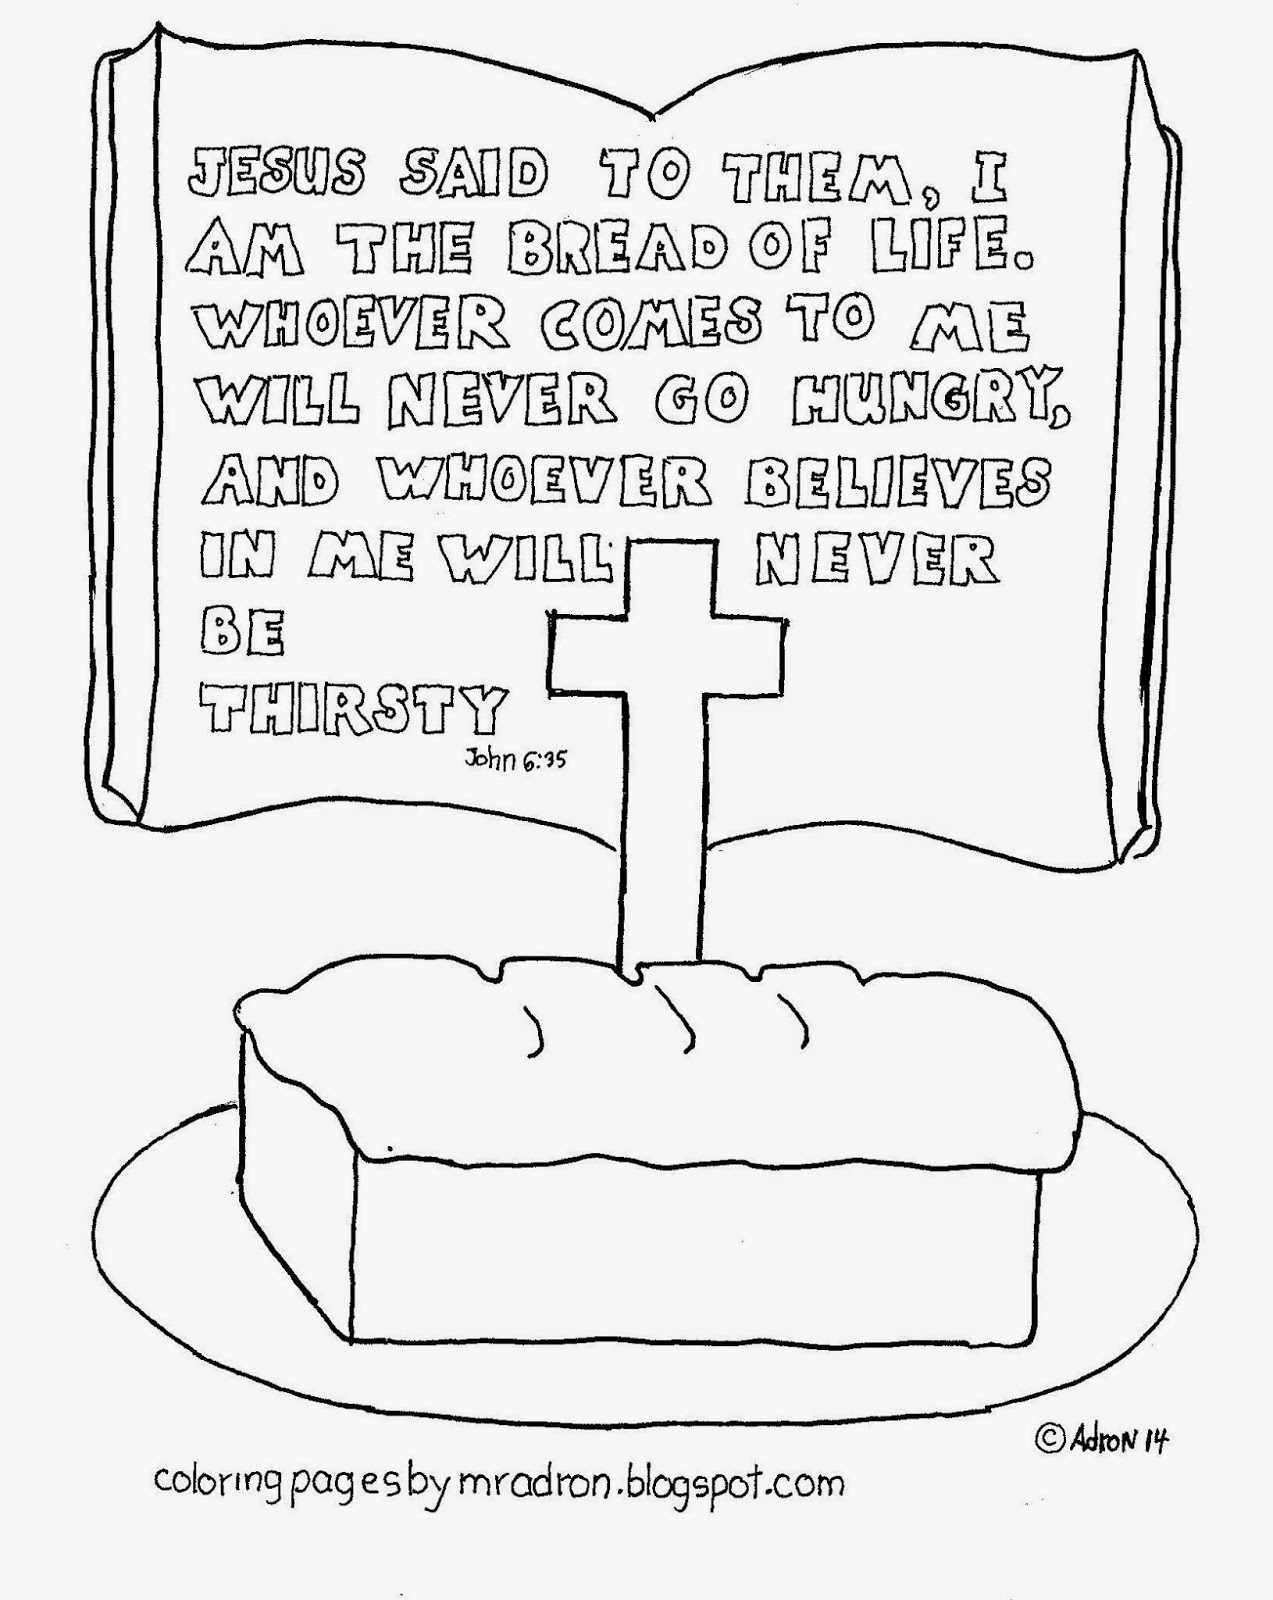 coloring pages for kidsmr. adron i am the bread of